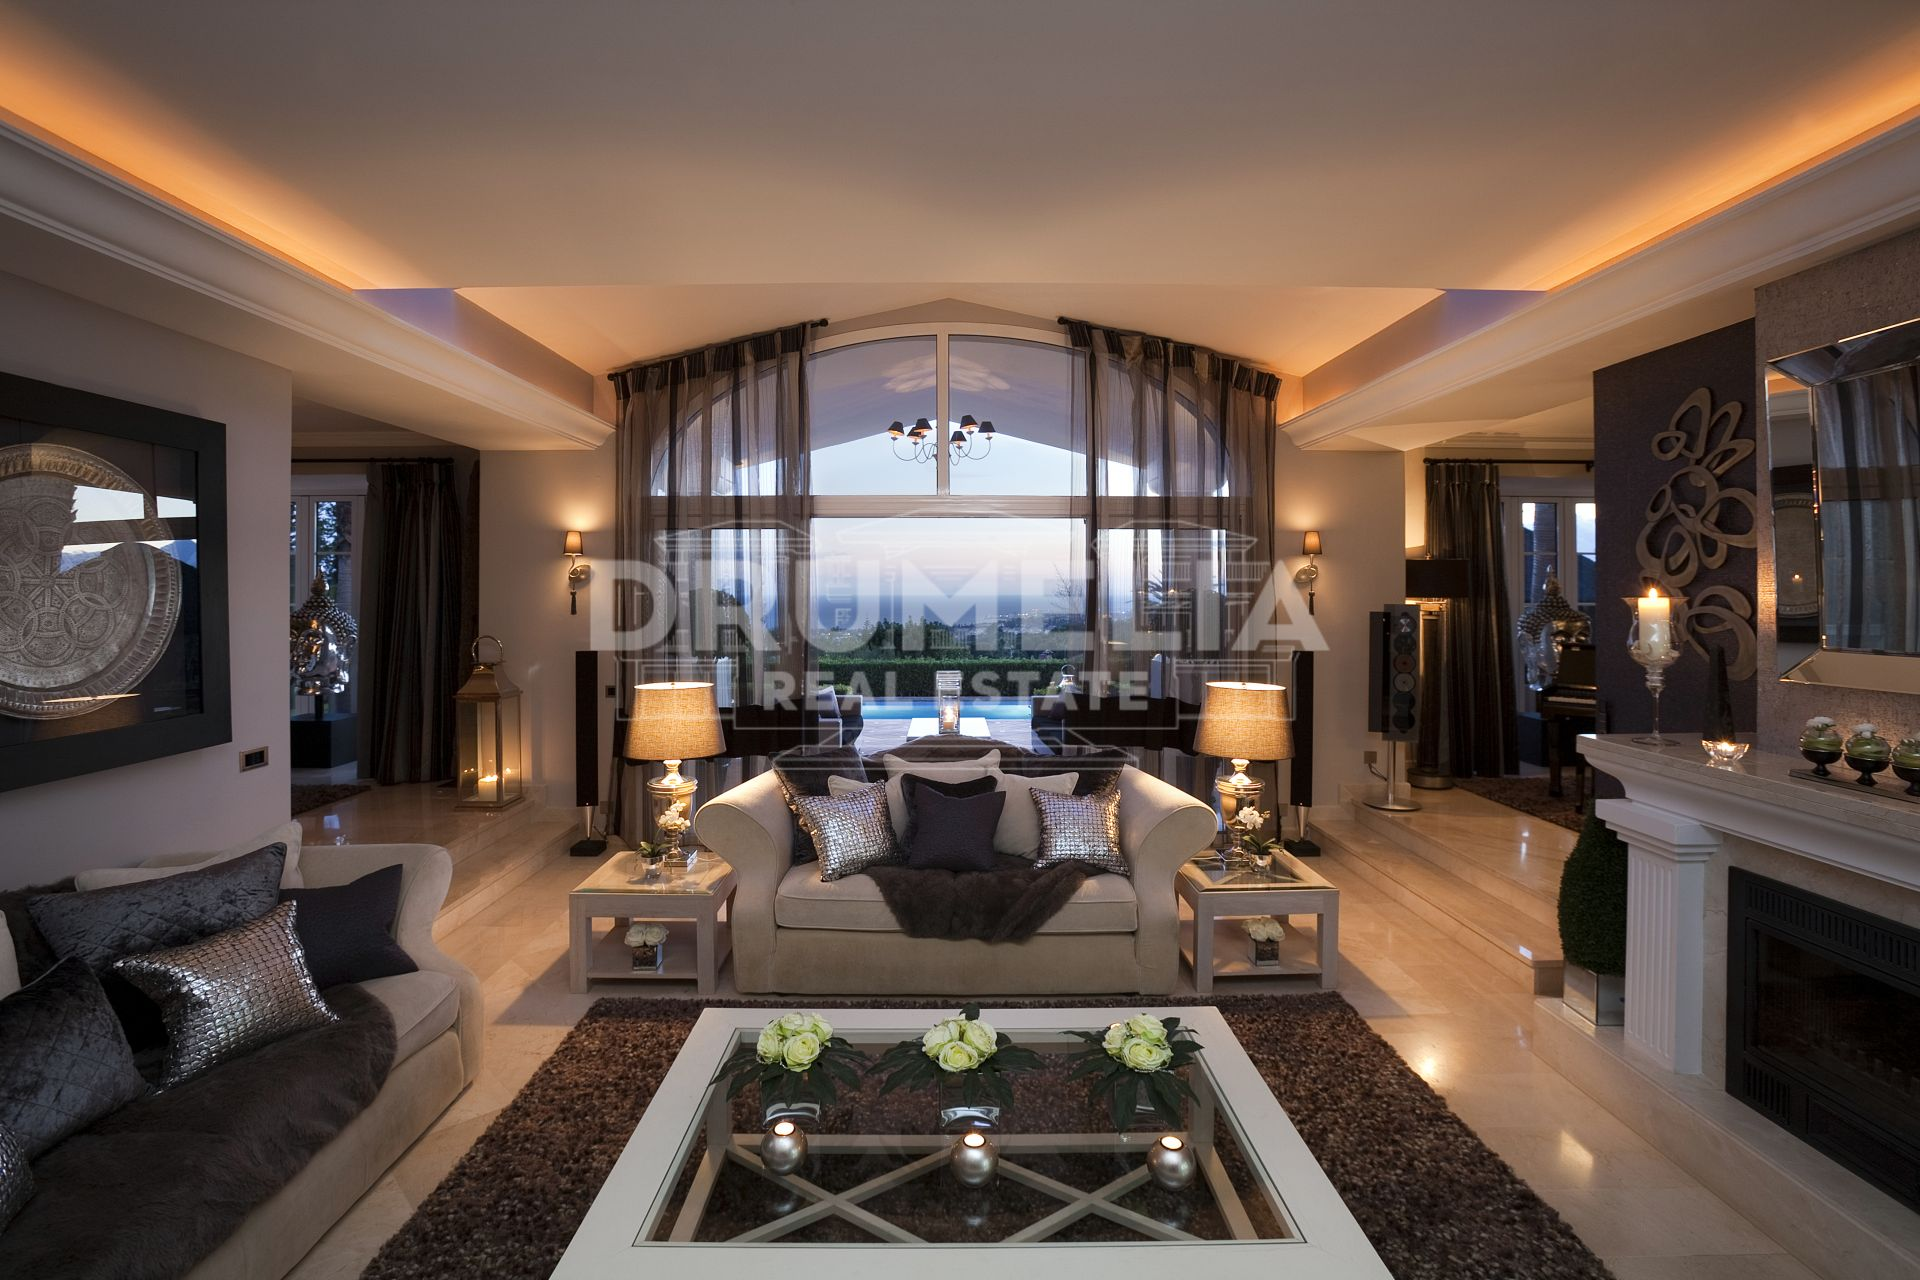 Marbella Golden Mile, 5 star private luxury villa nestled in the hills of Sierra Blanca